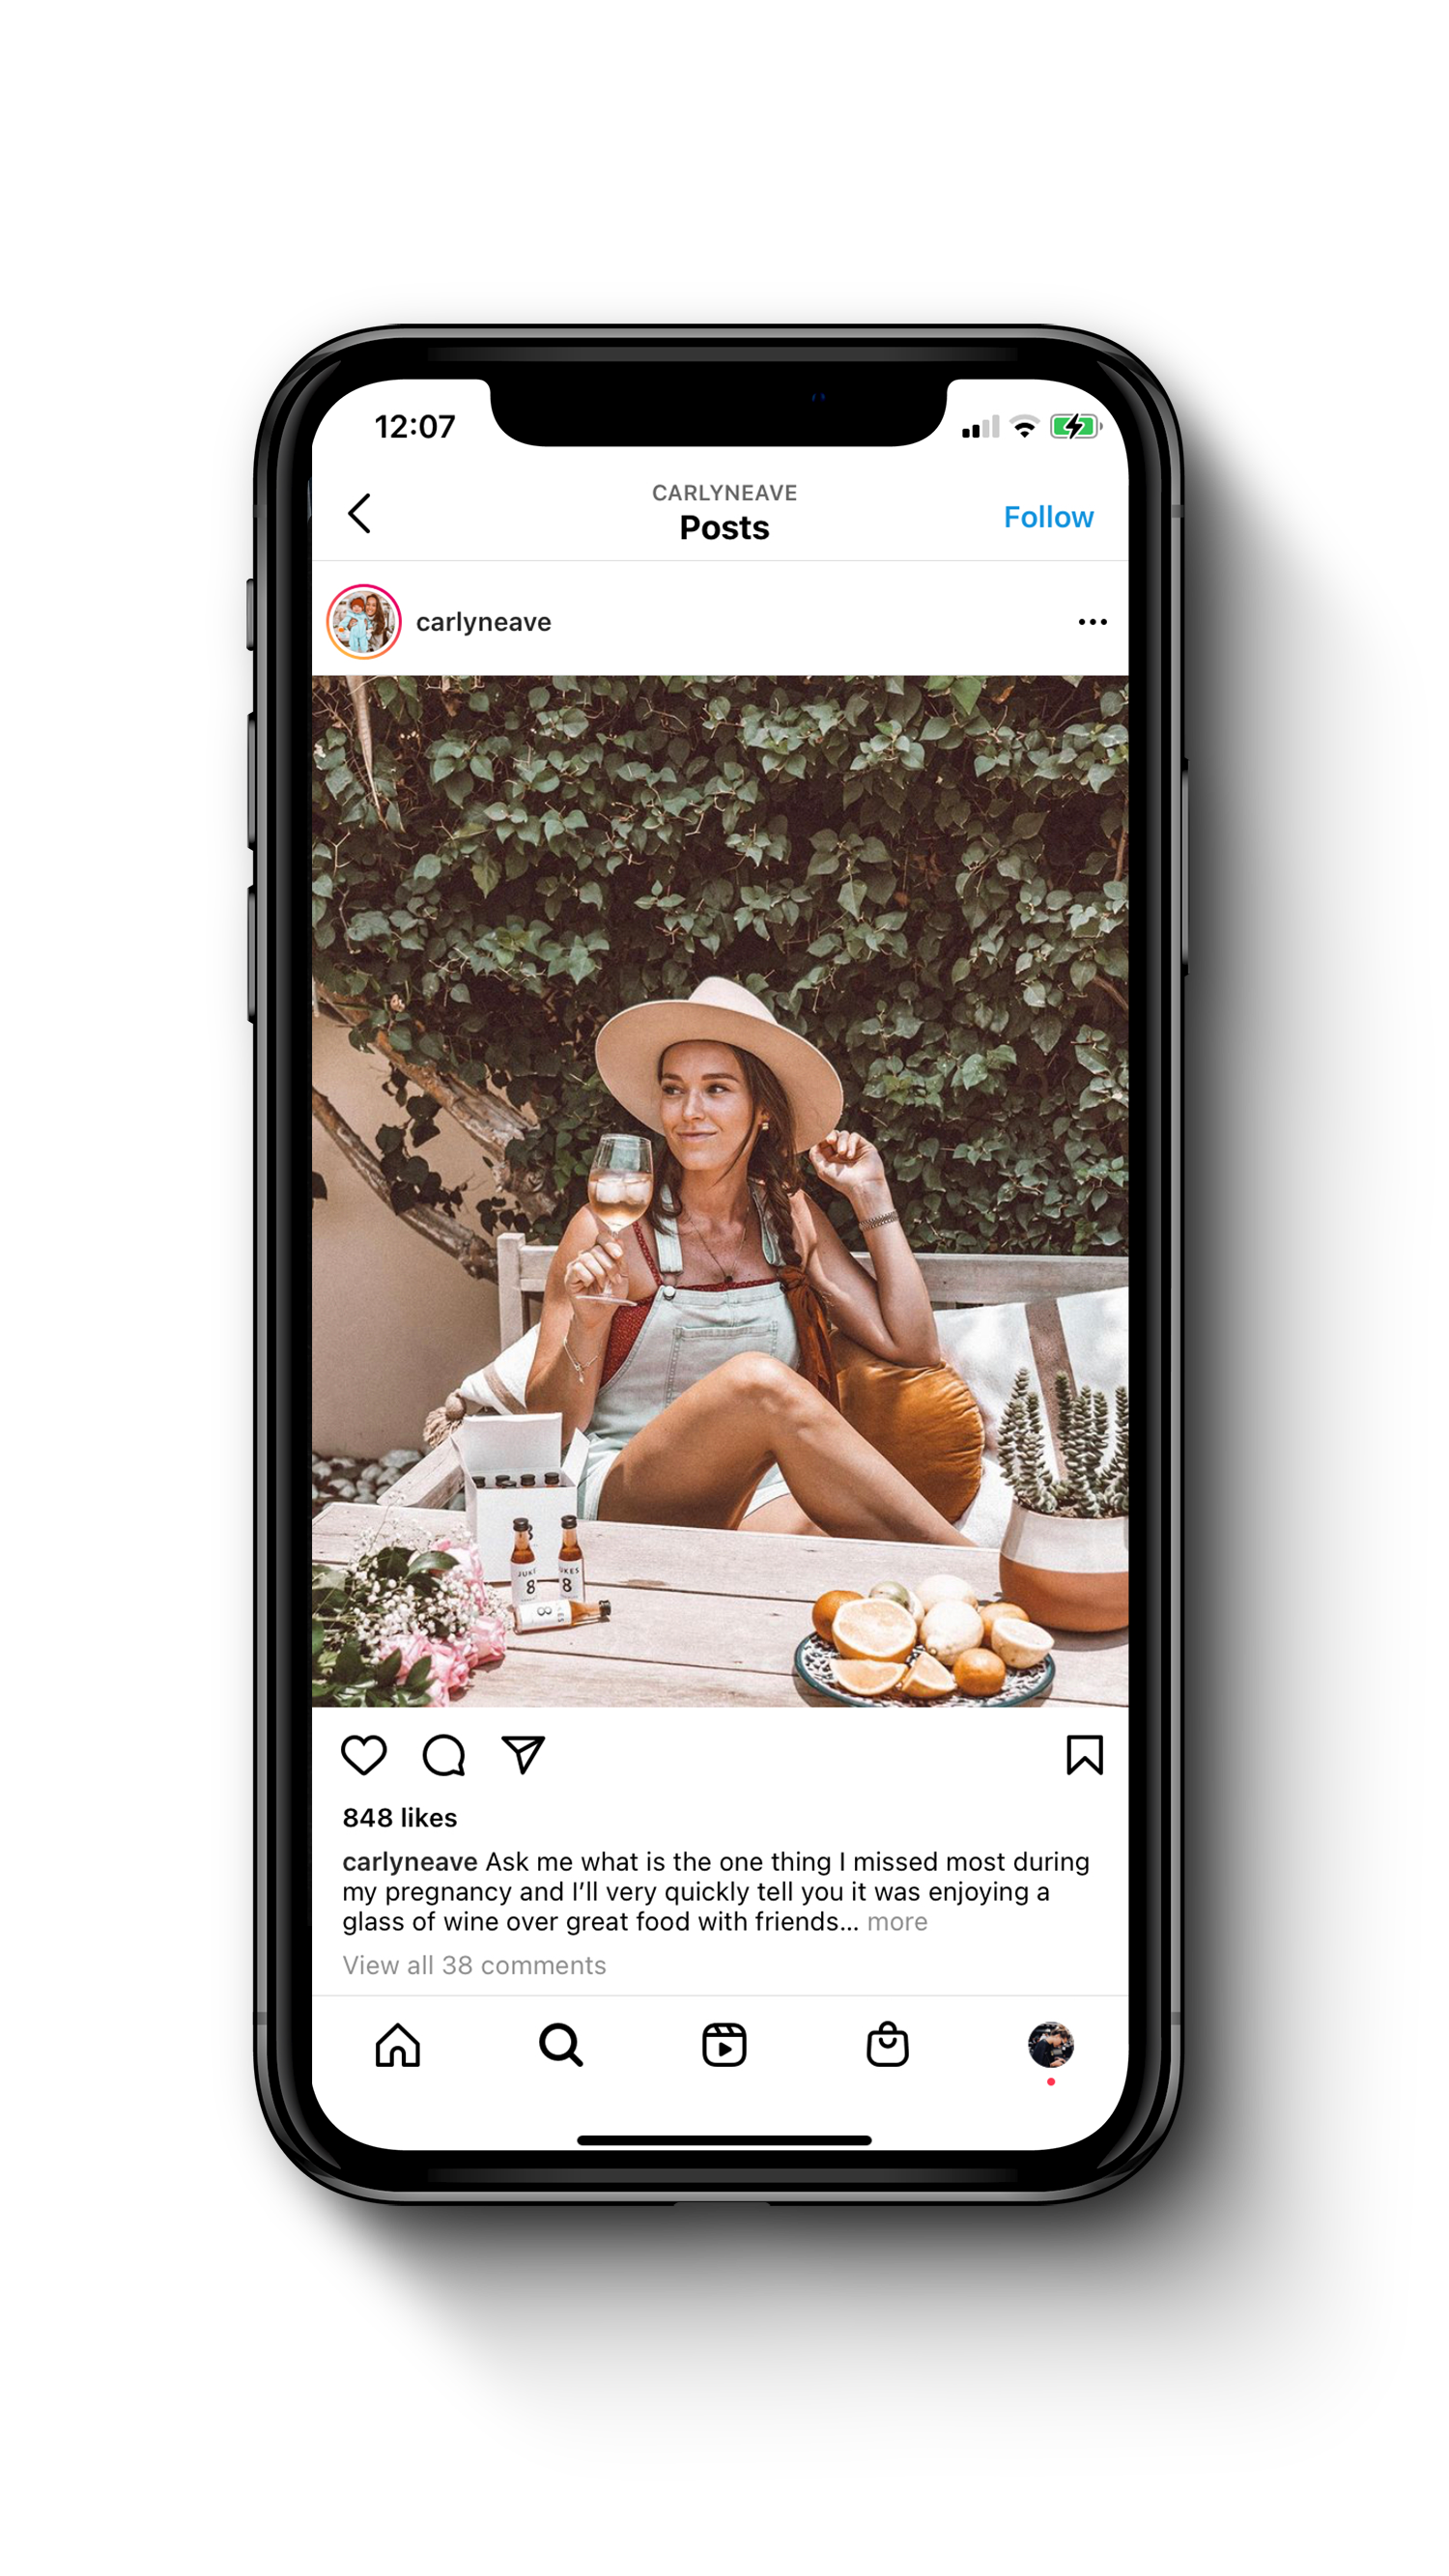 iphone showing an instagram post of an influencer using Jukes products